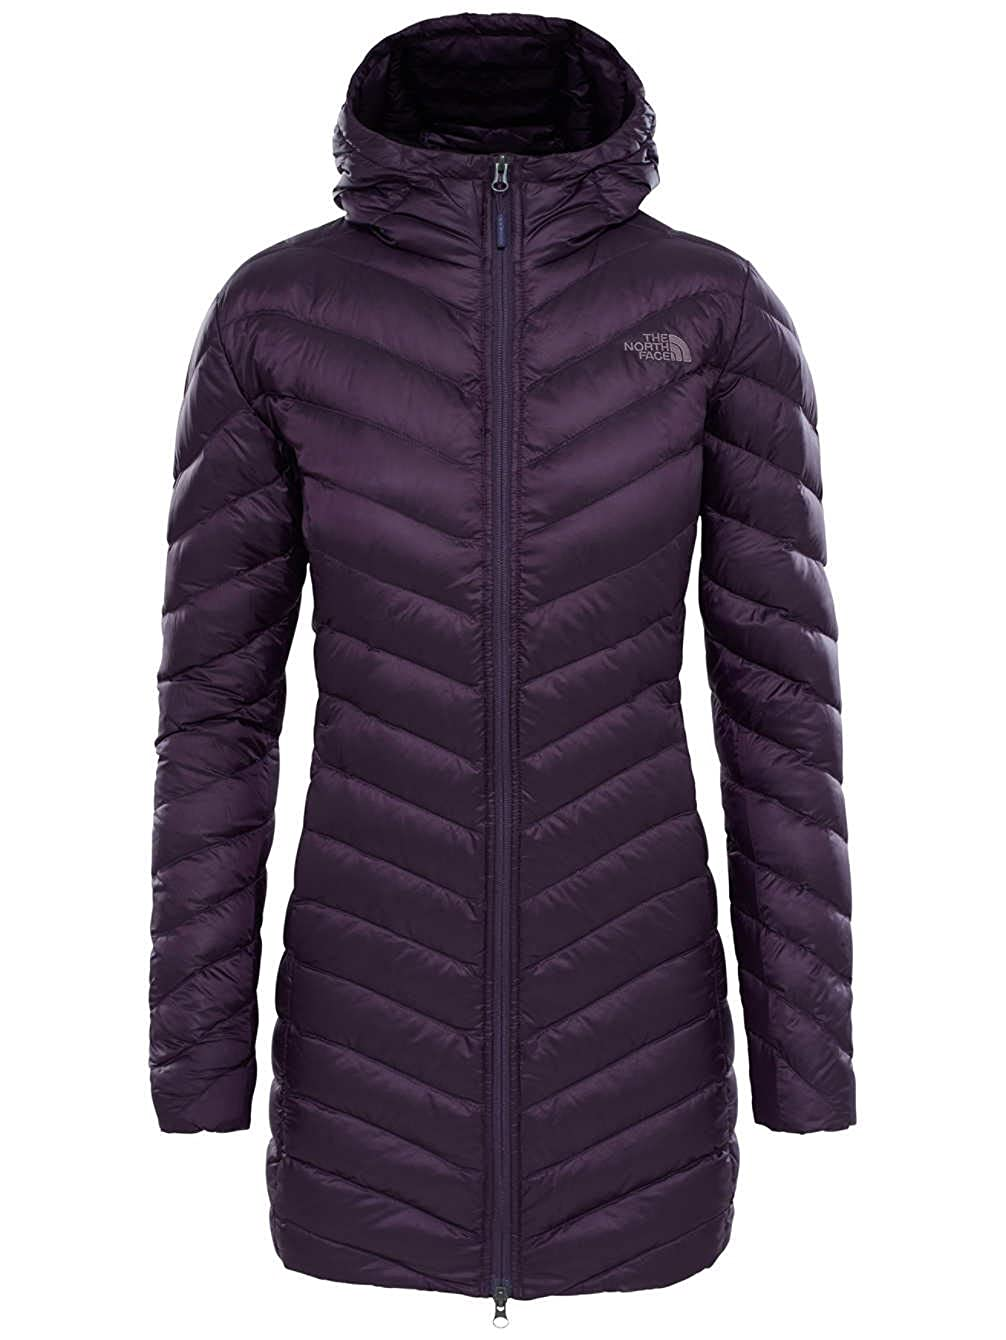 The North Face Womenâ€s Trevail Parka